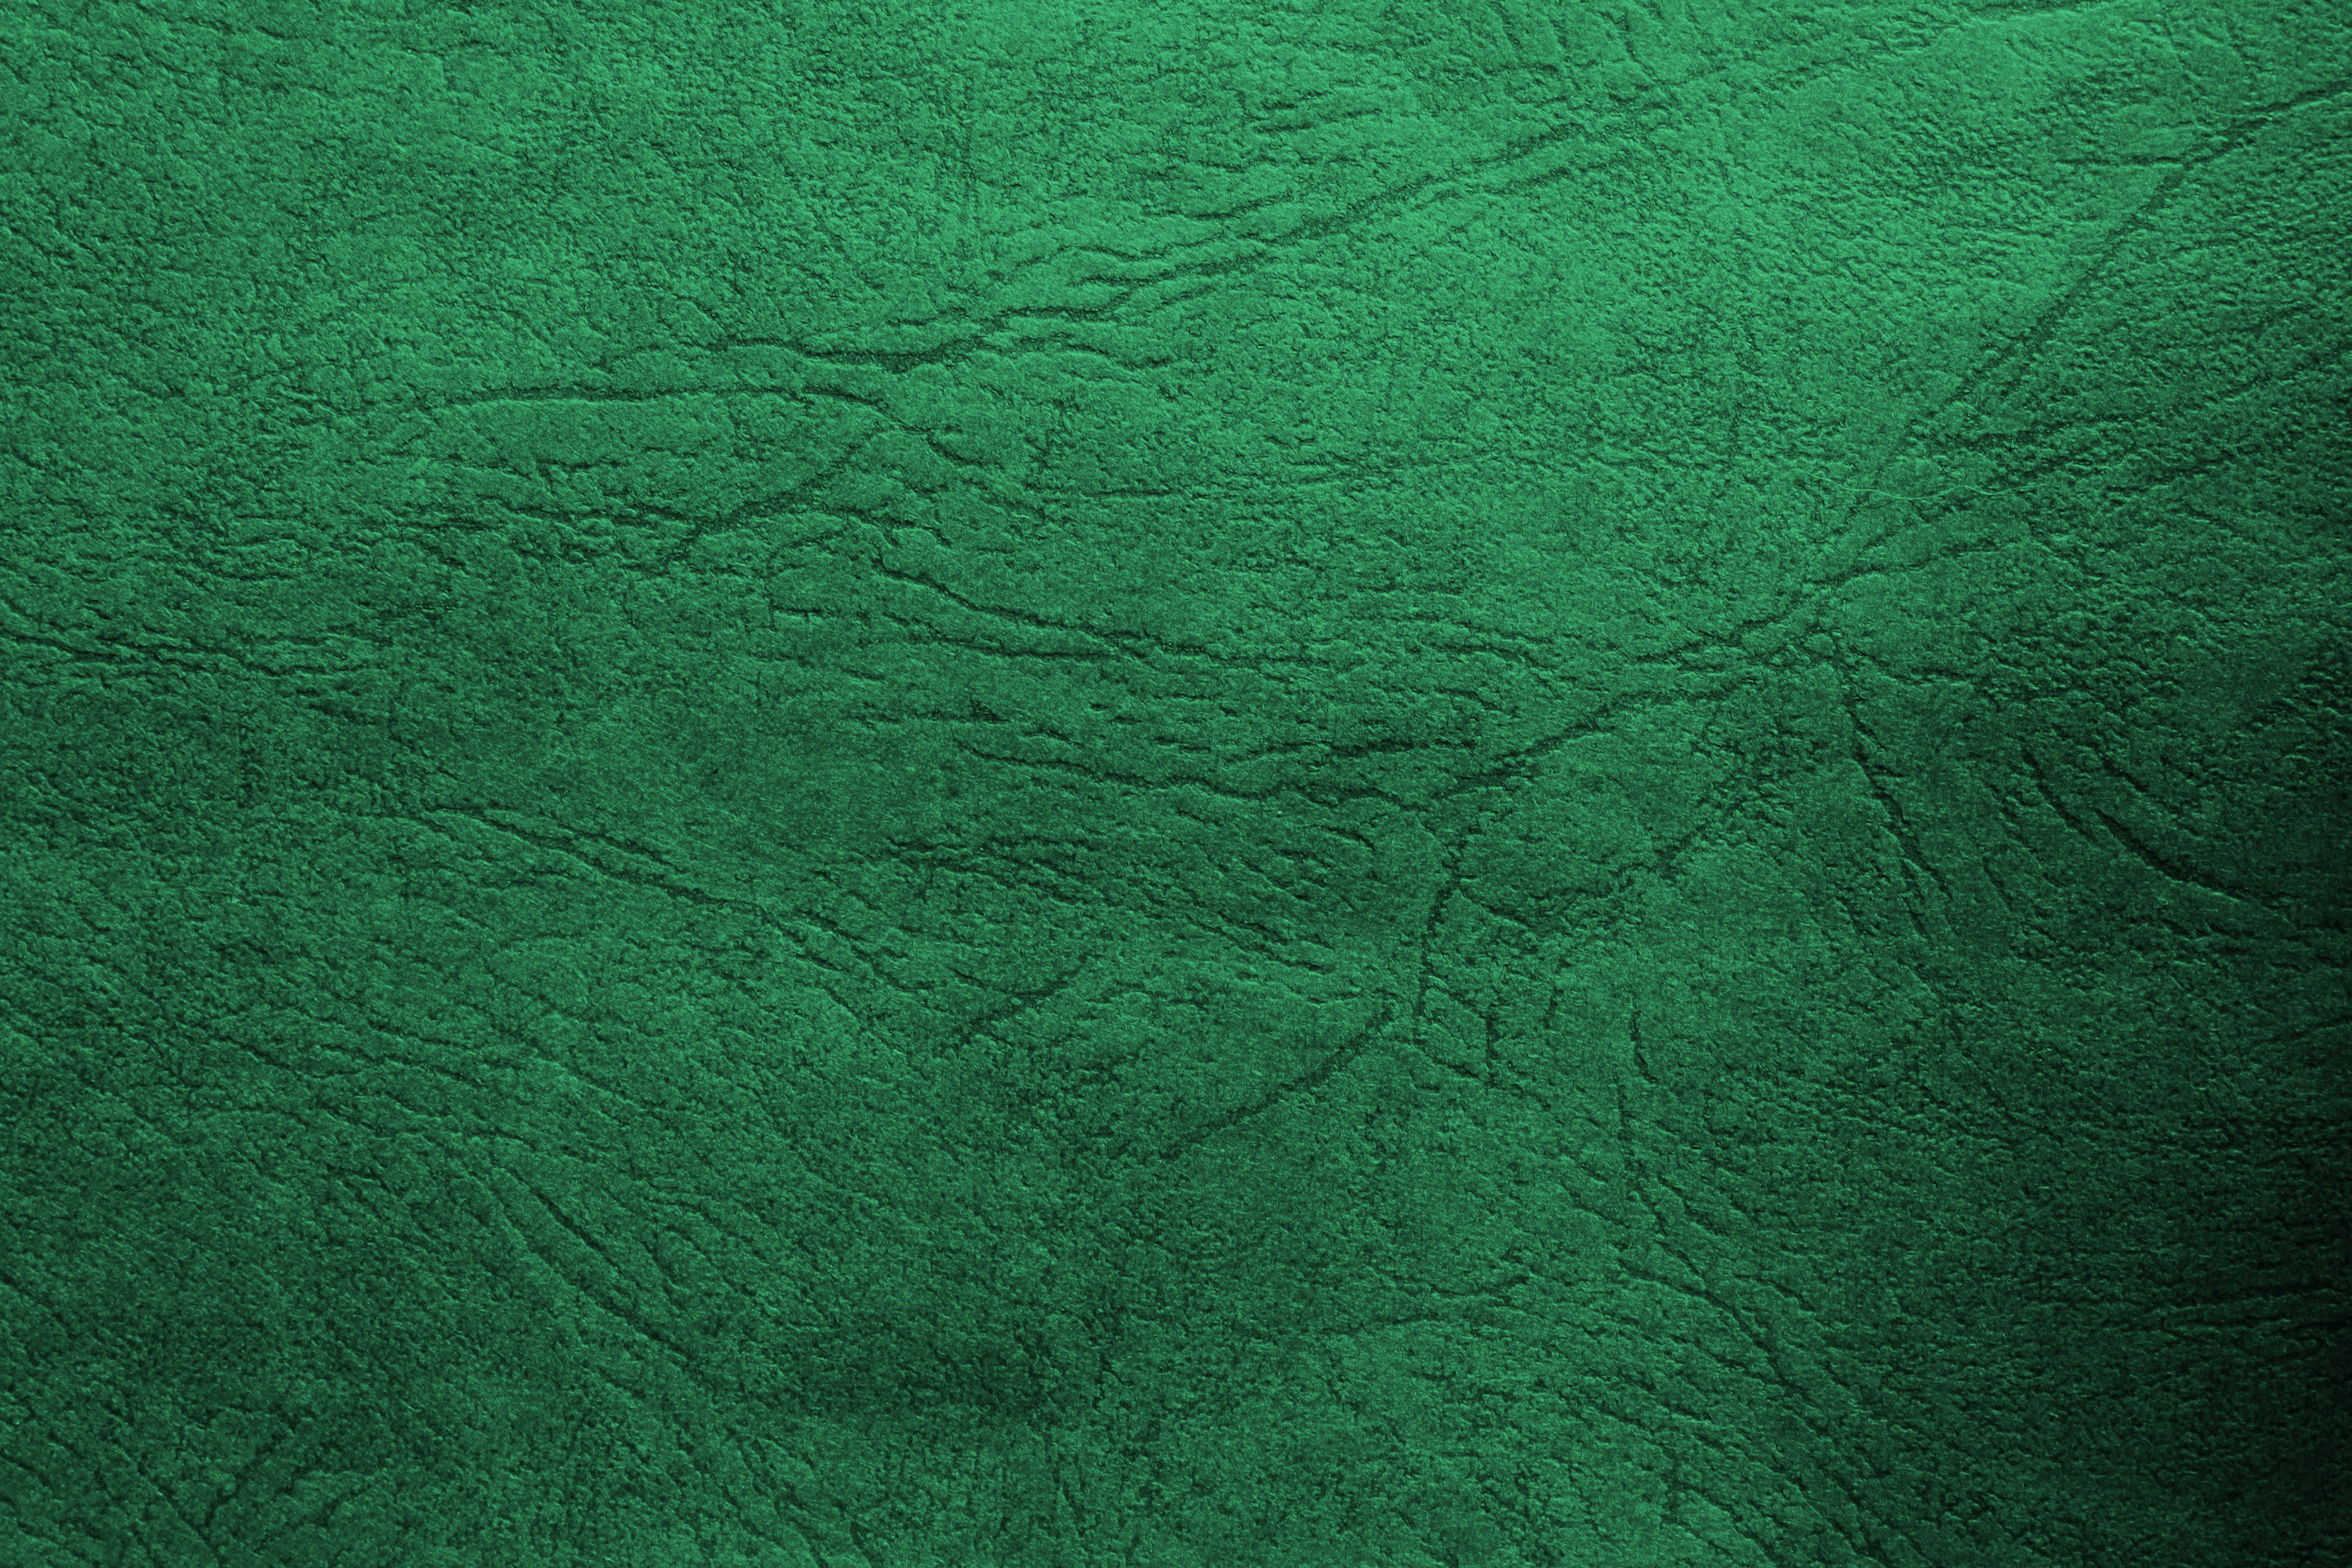 Green Leather Texture Photos Public Domain